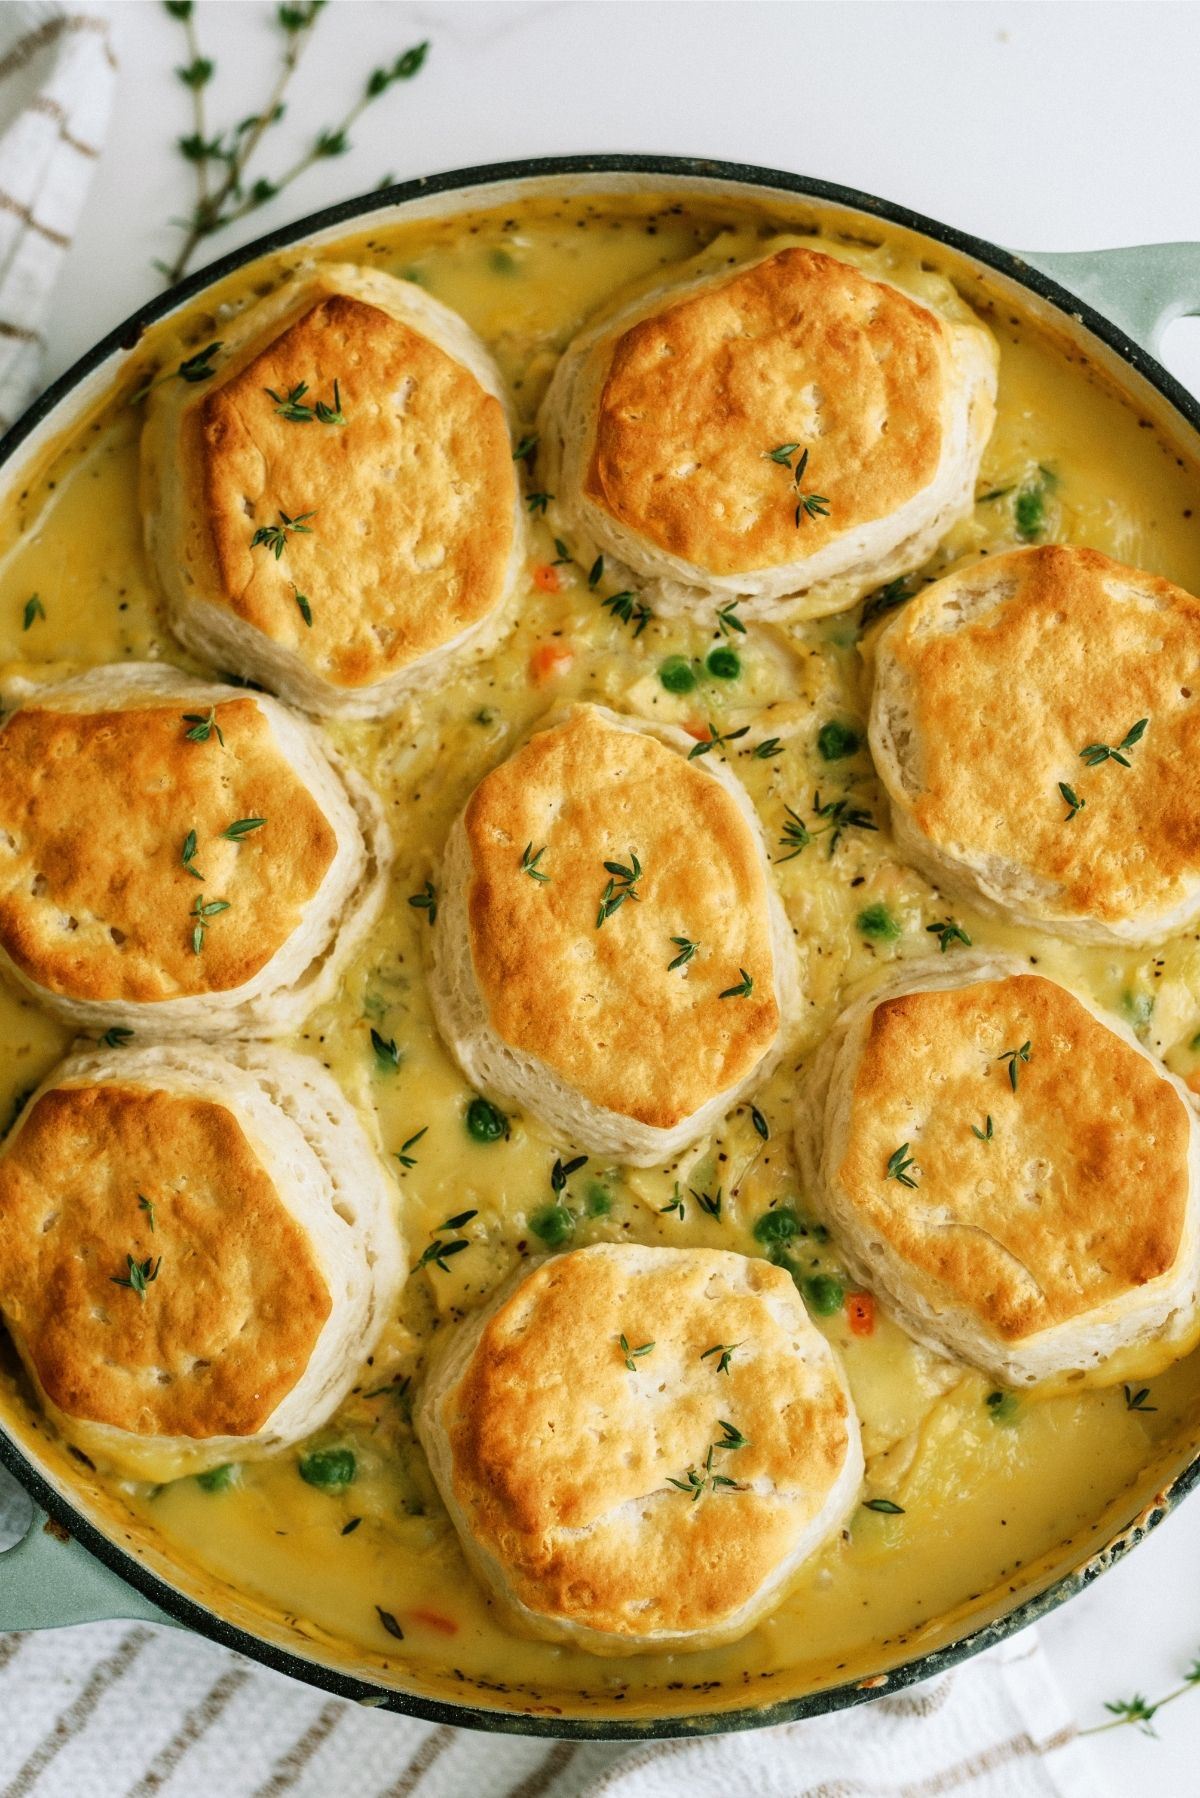 Easy Biscuit Chicken Pot Pie in a round dish on a towel